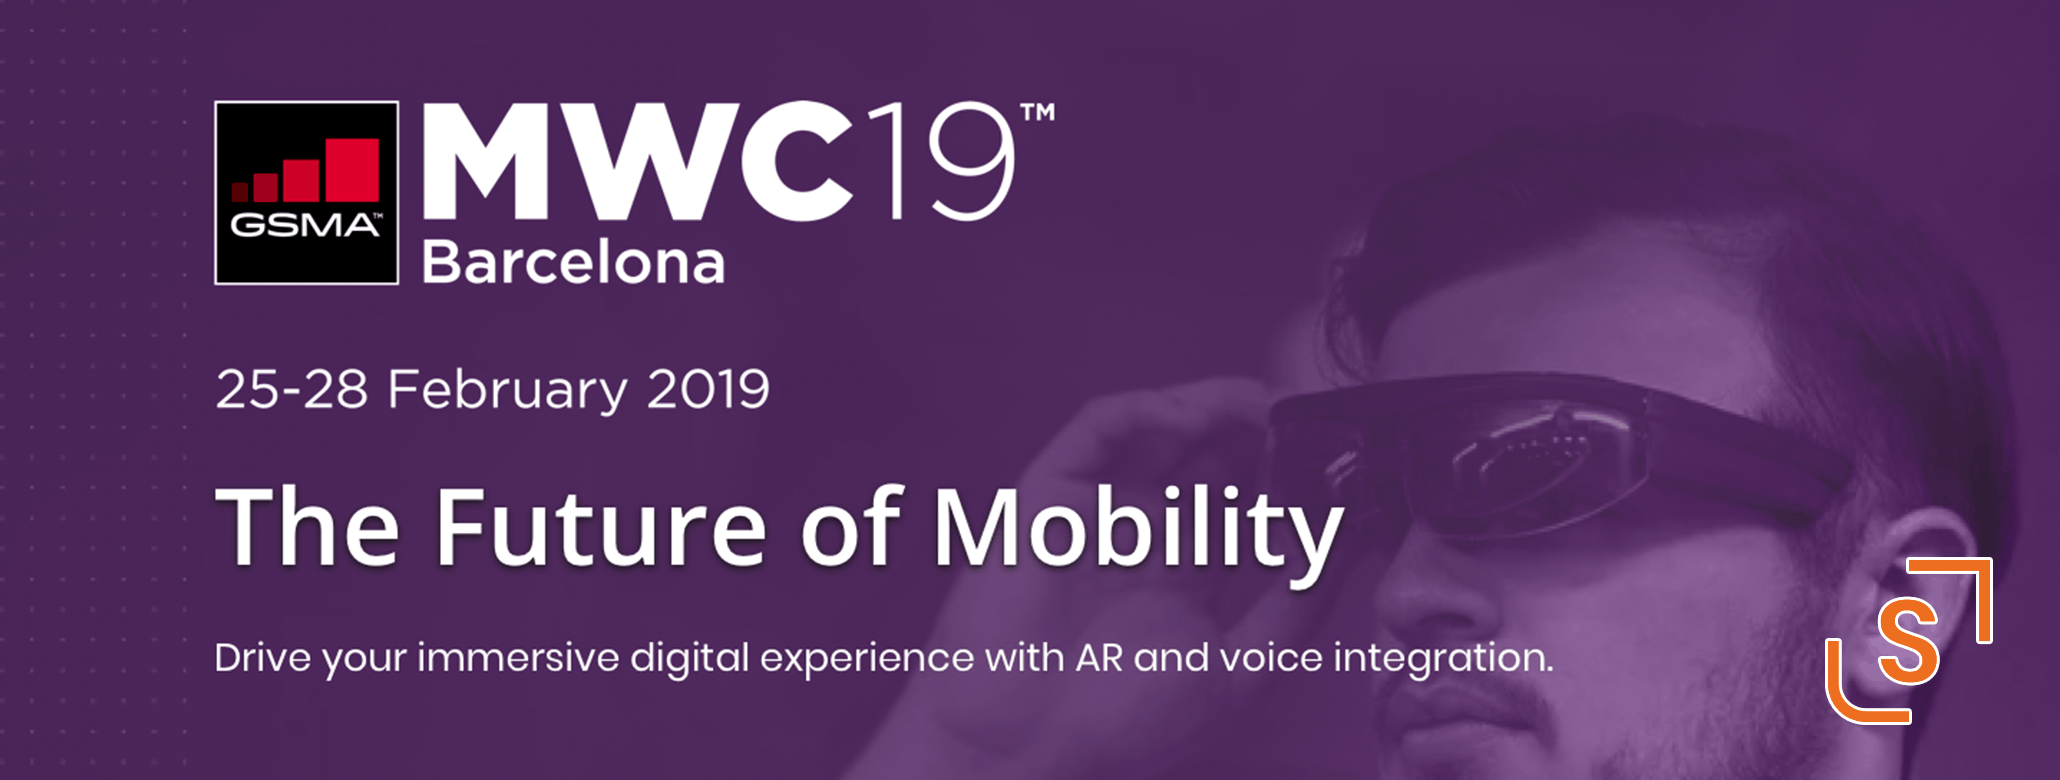 Shockoe at MWC19 Barcelona